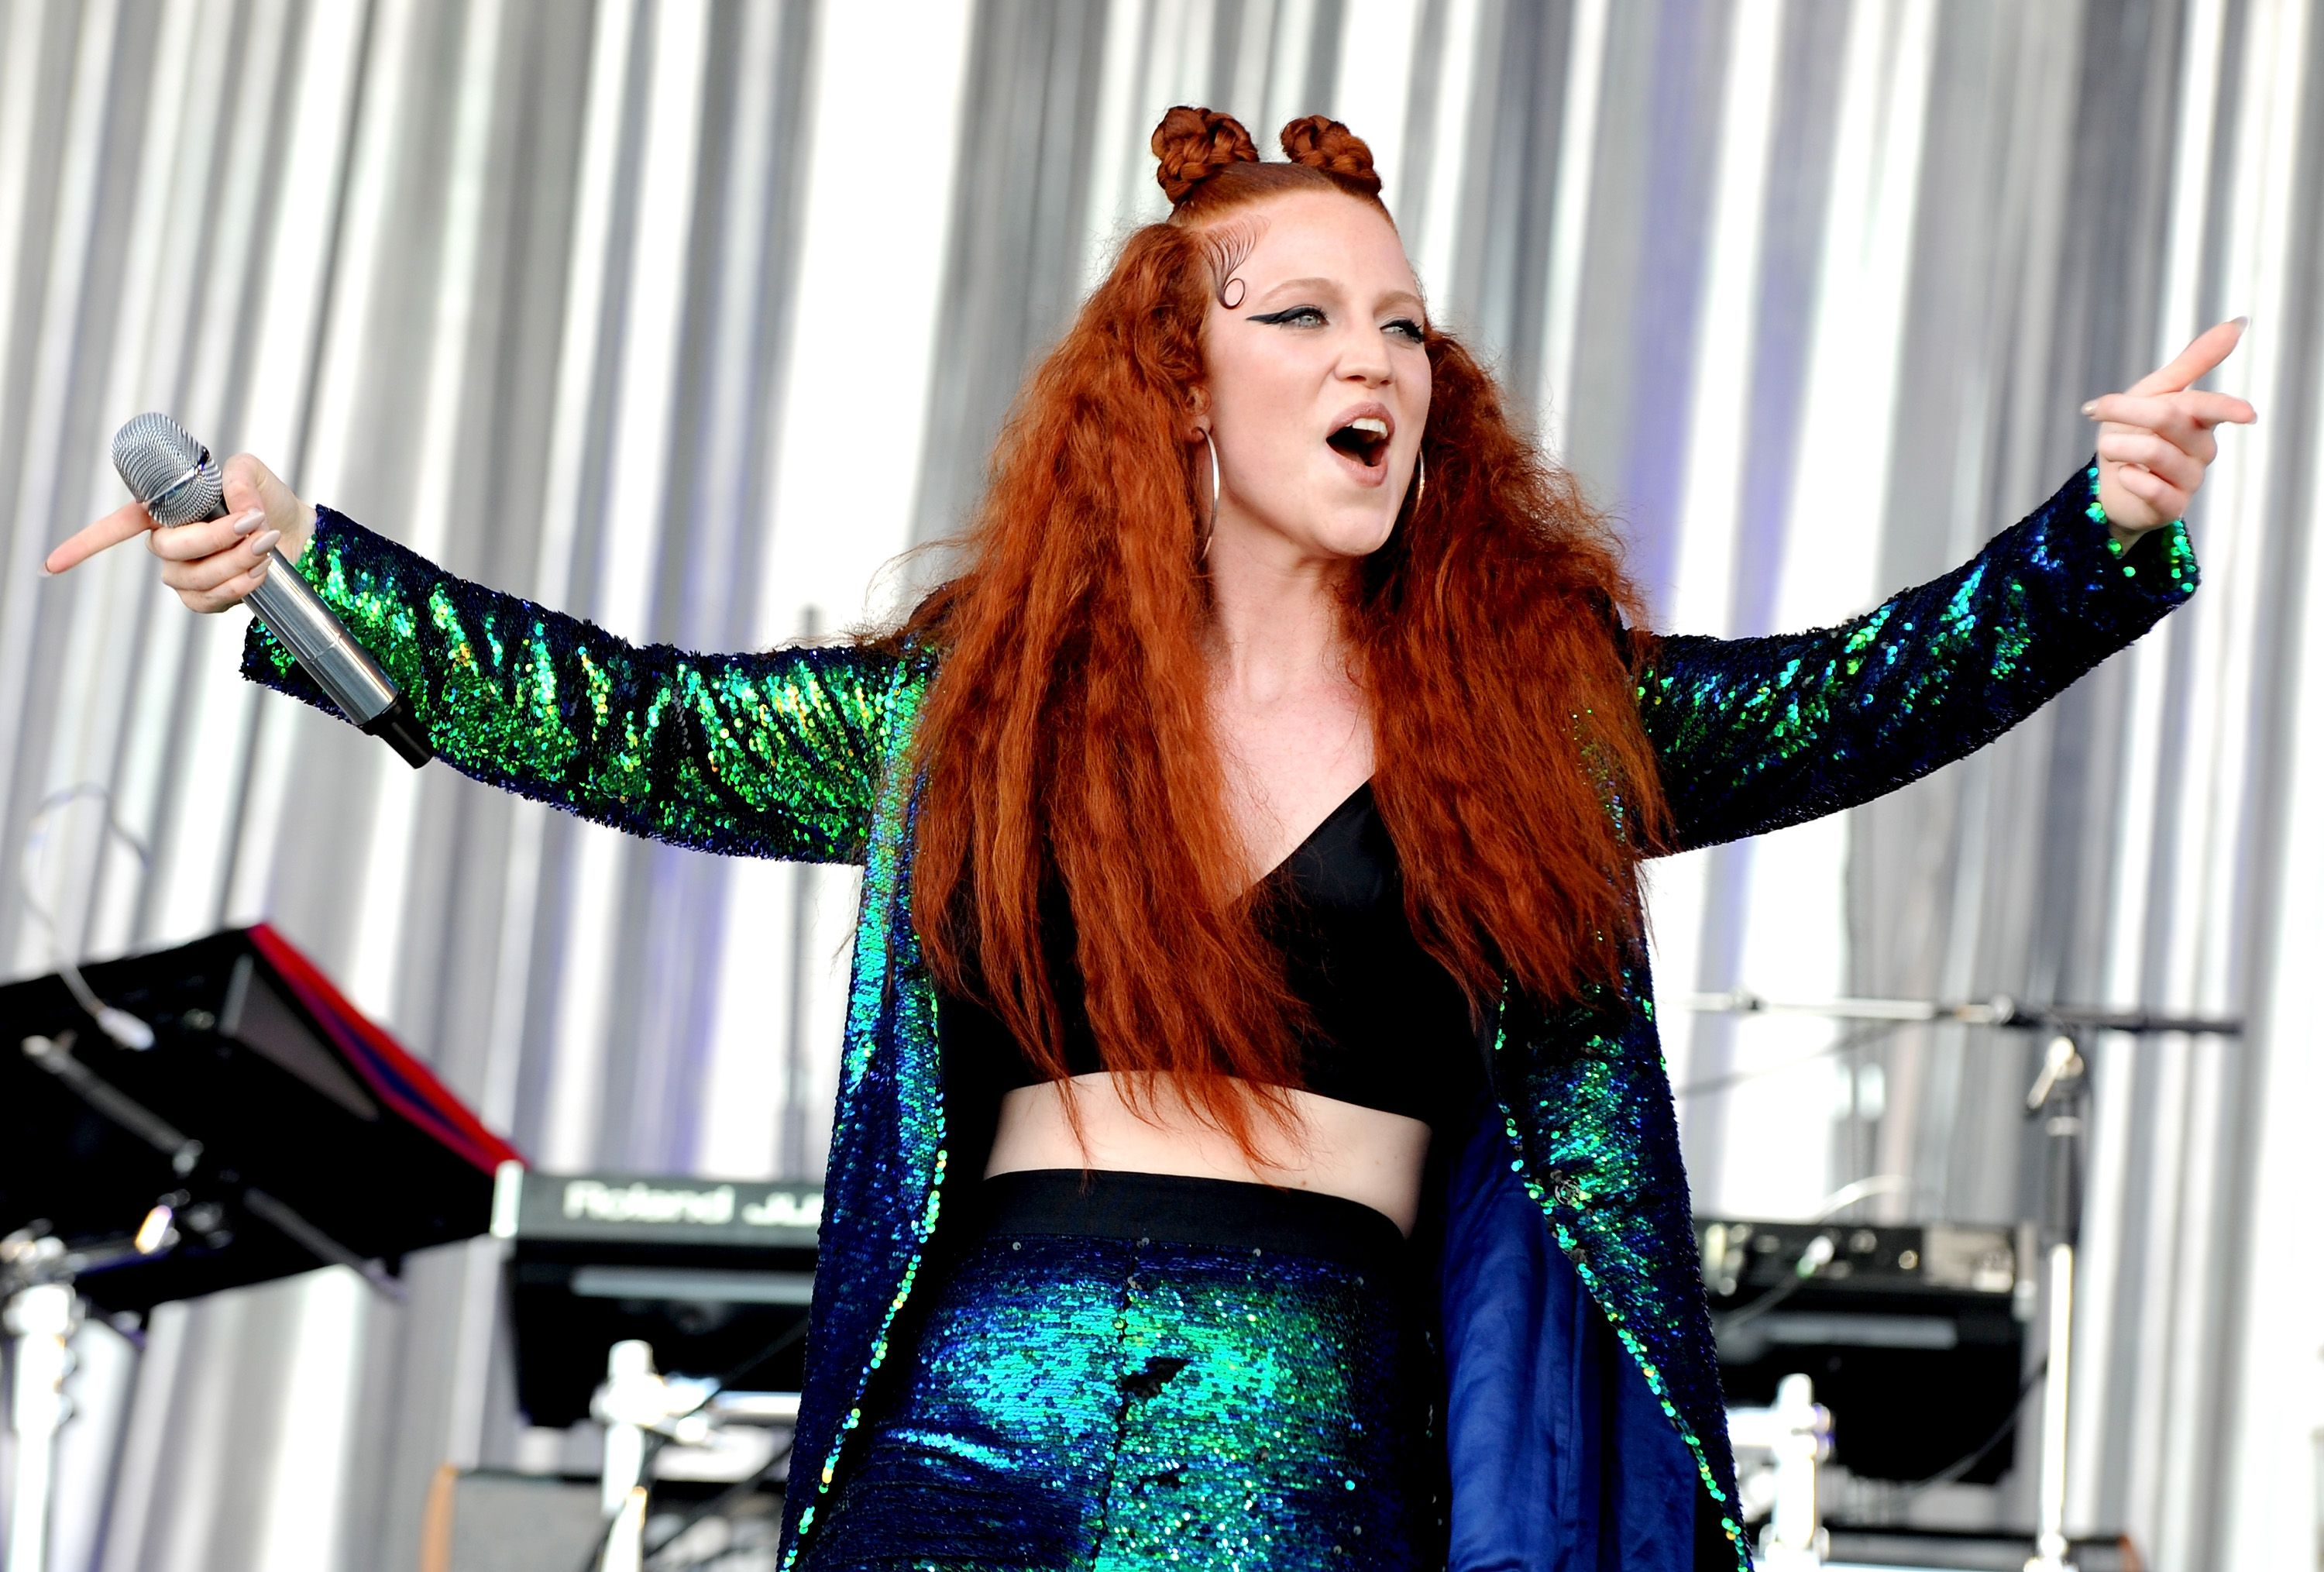 0892dcb4e22f6 Jess Glynne lights up Glastonbury for her Pyramid Stage debut after having  to cancel last year